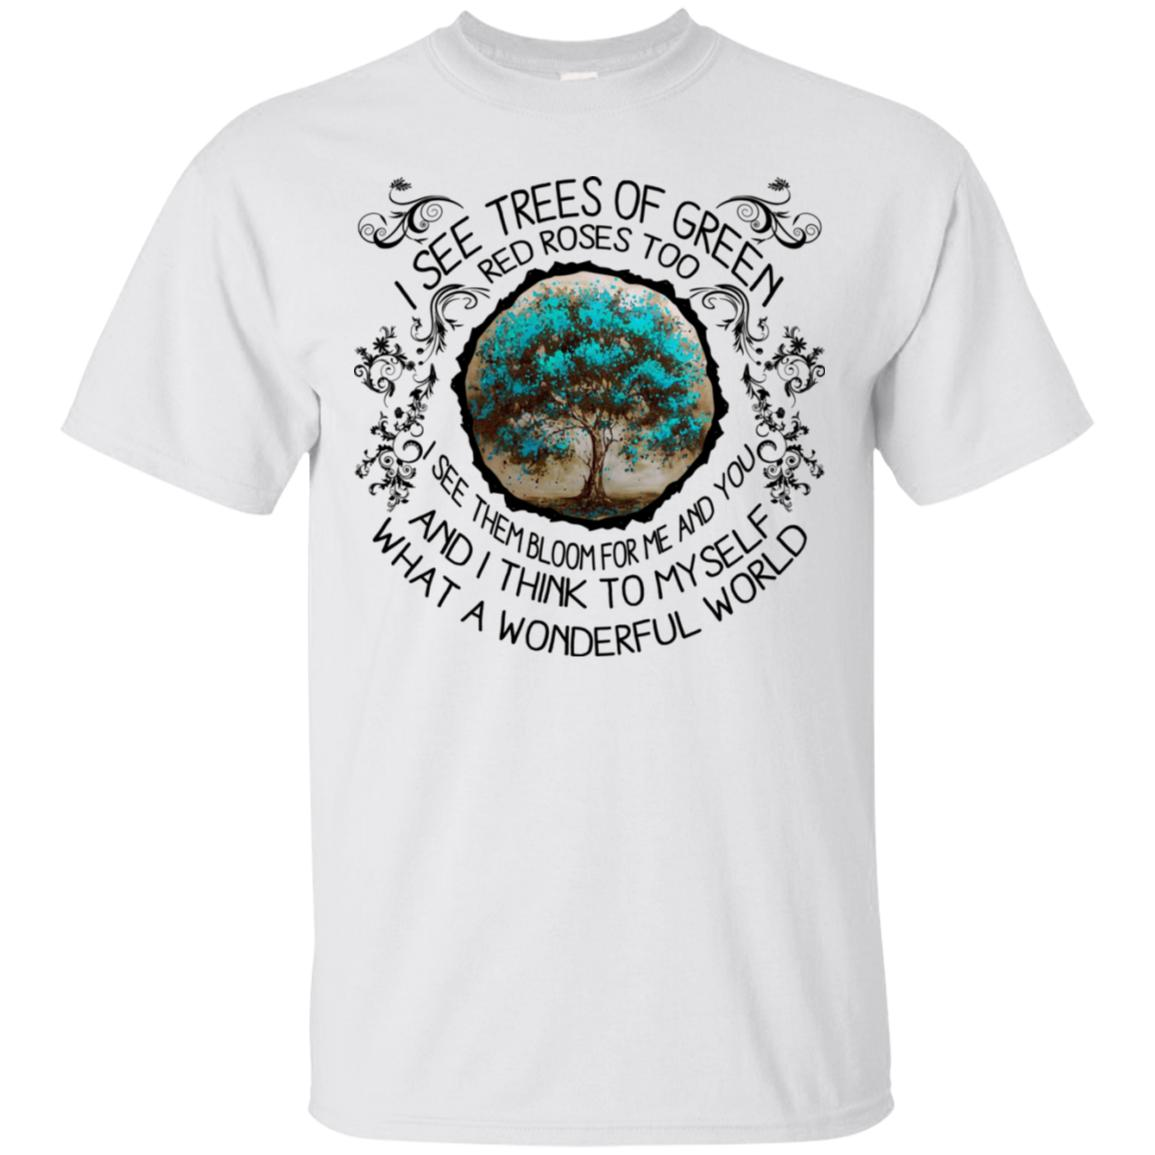 I See Trees Of Green Red Roses Too Louis Armstrong T-shirt KA02